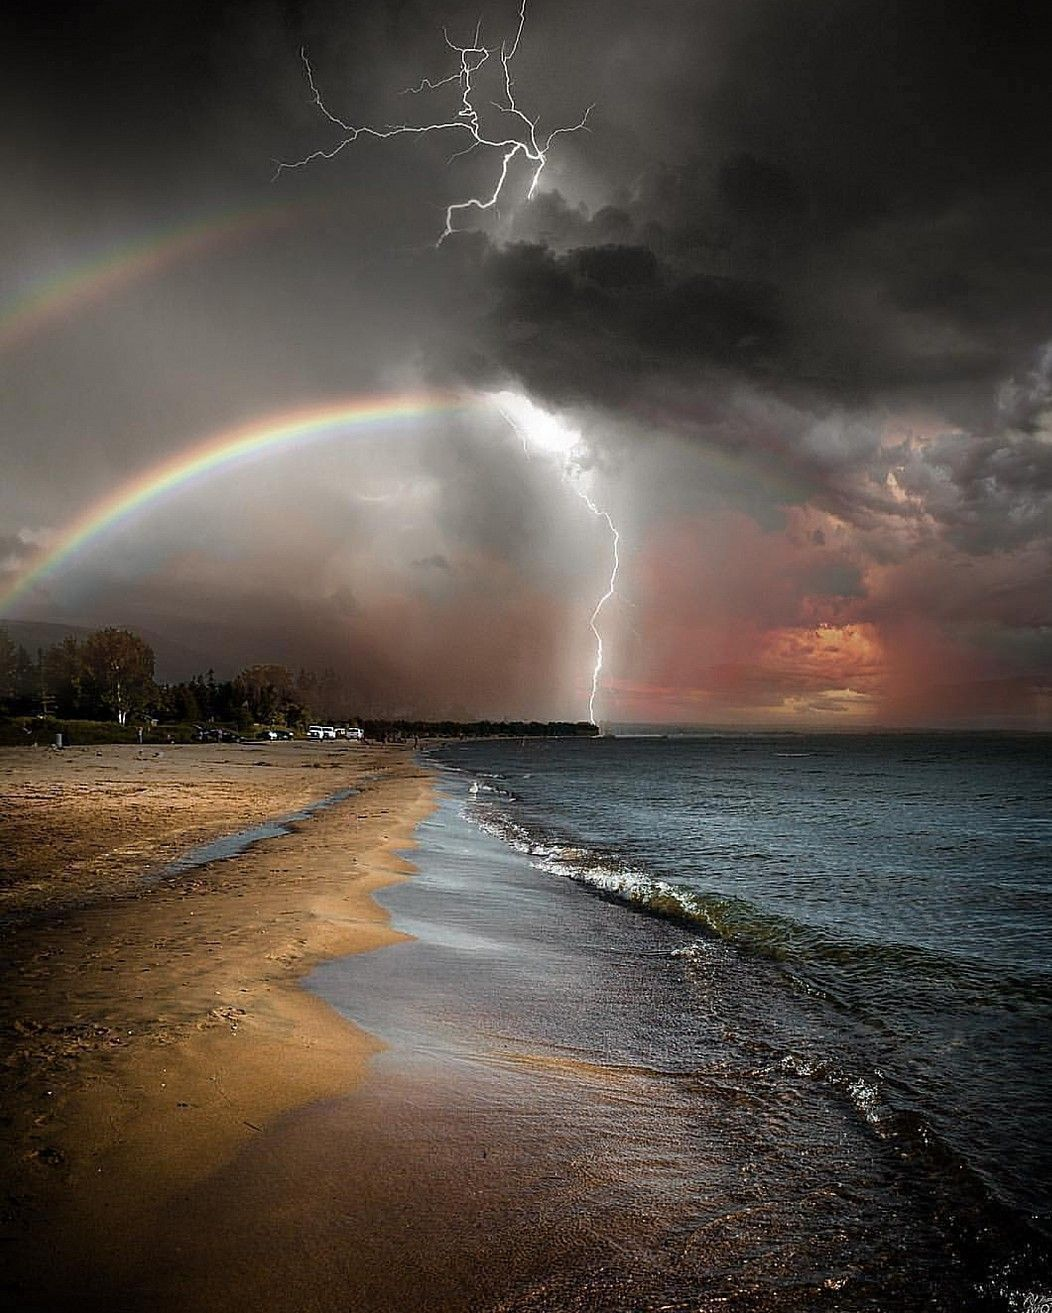 Two Rainbows and one huge thunderbolt, altogether